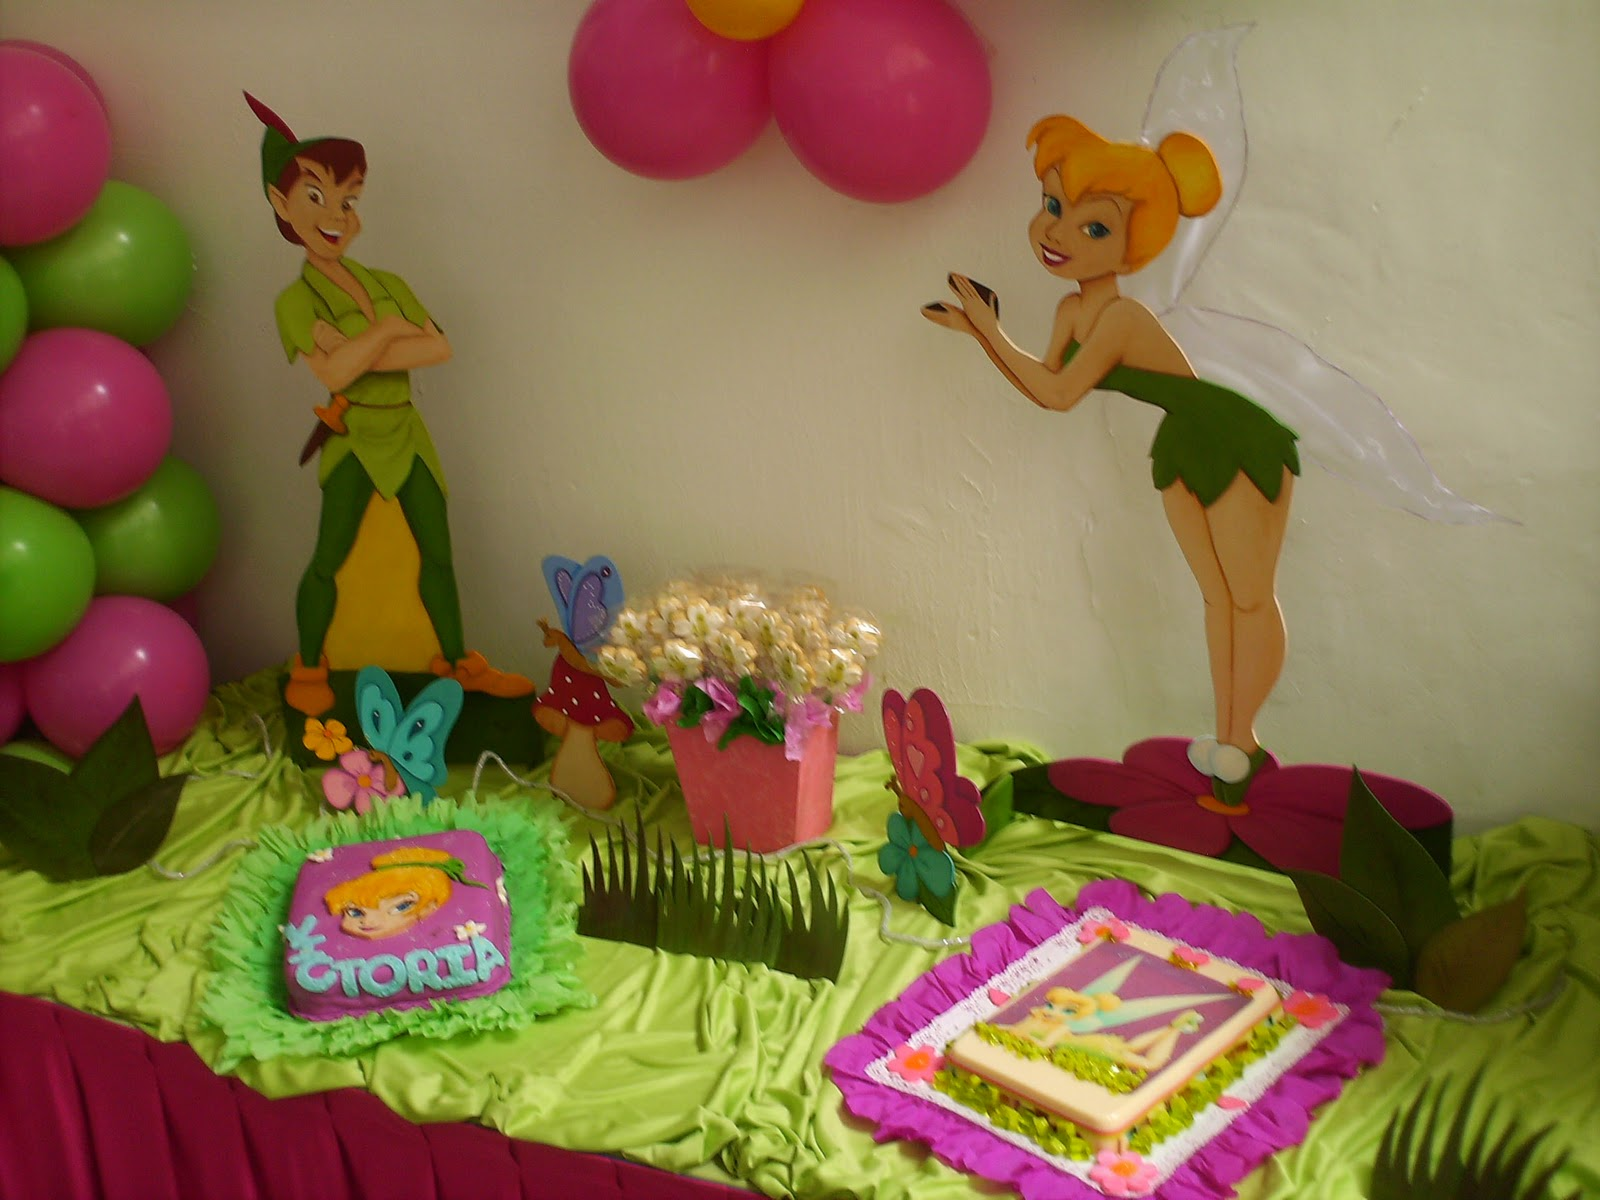 Pin Fiesta Campanita Tinkerbell Fin Genuardis Portal on Pinterest